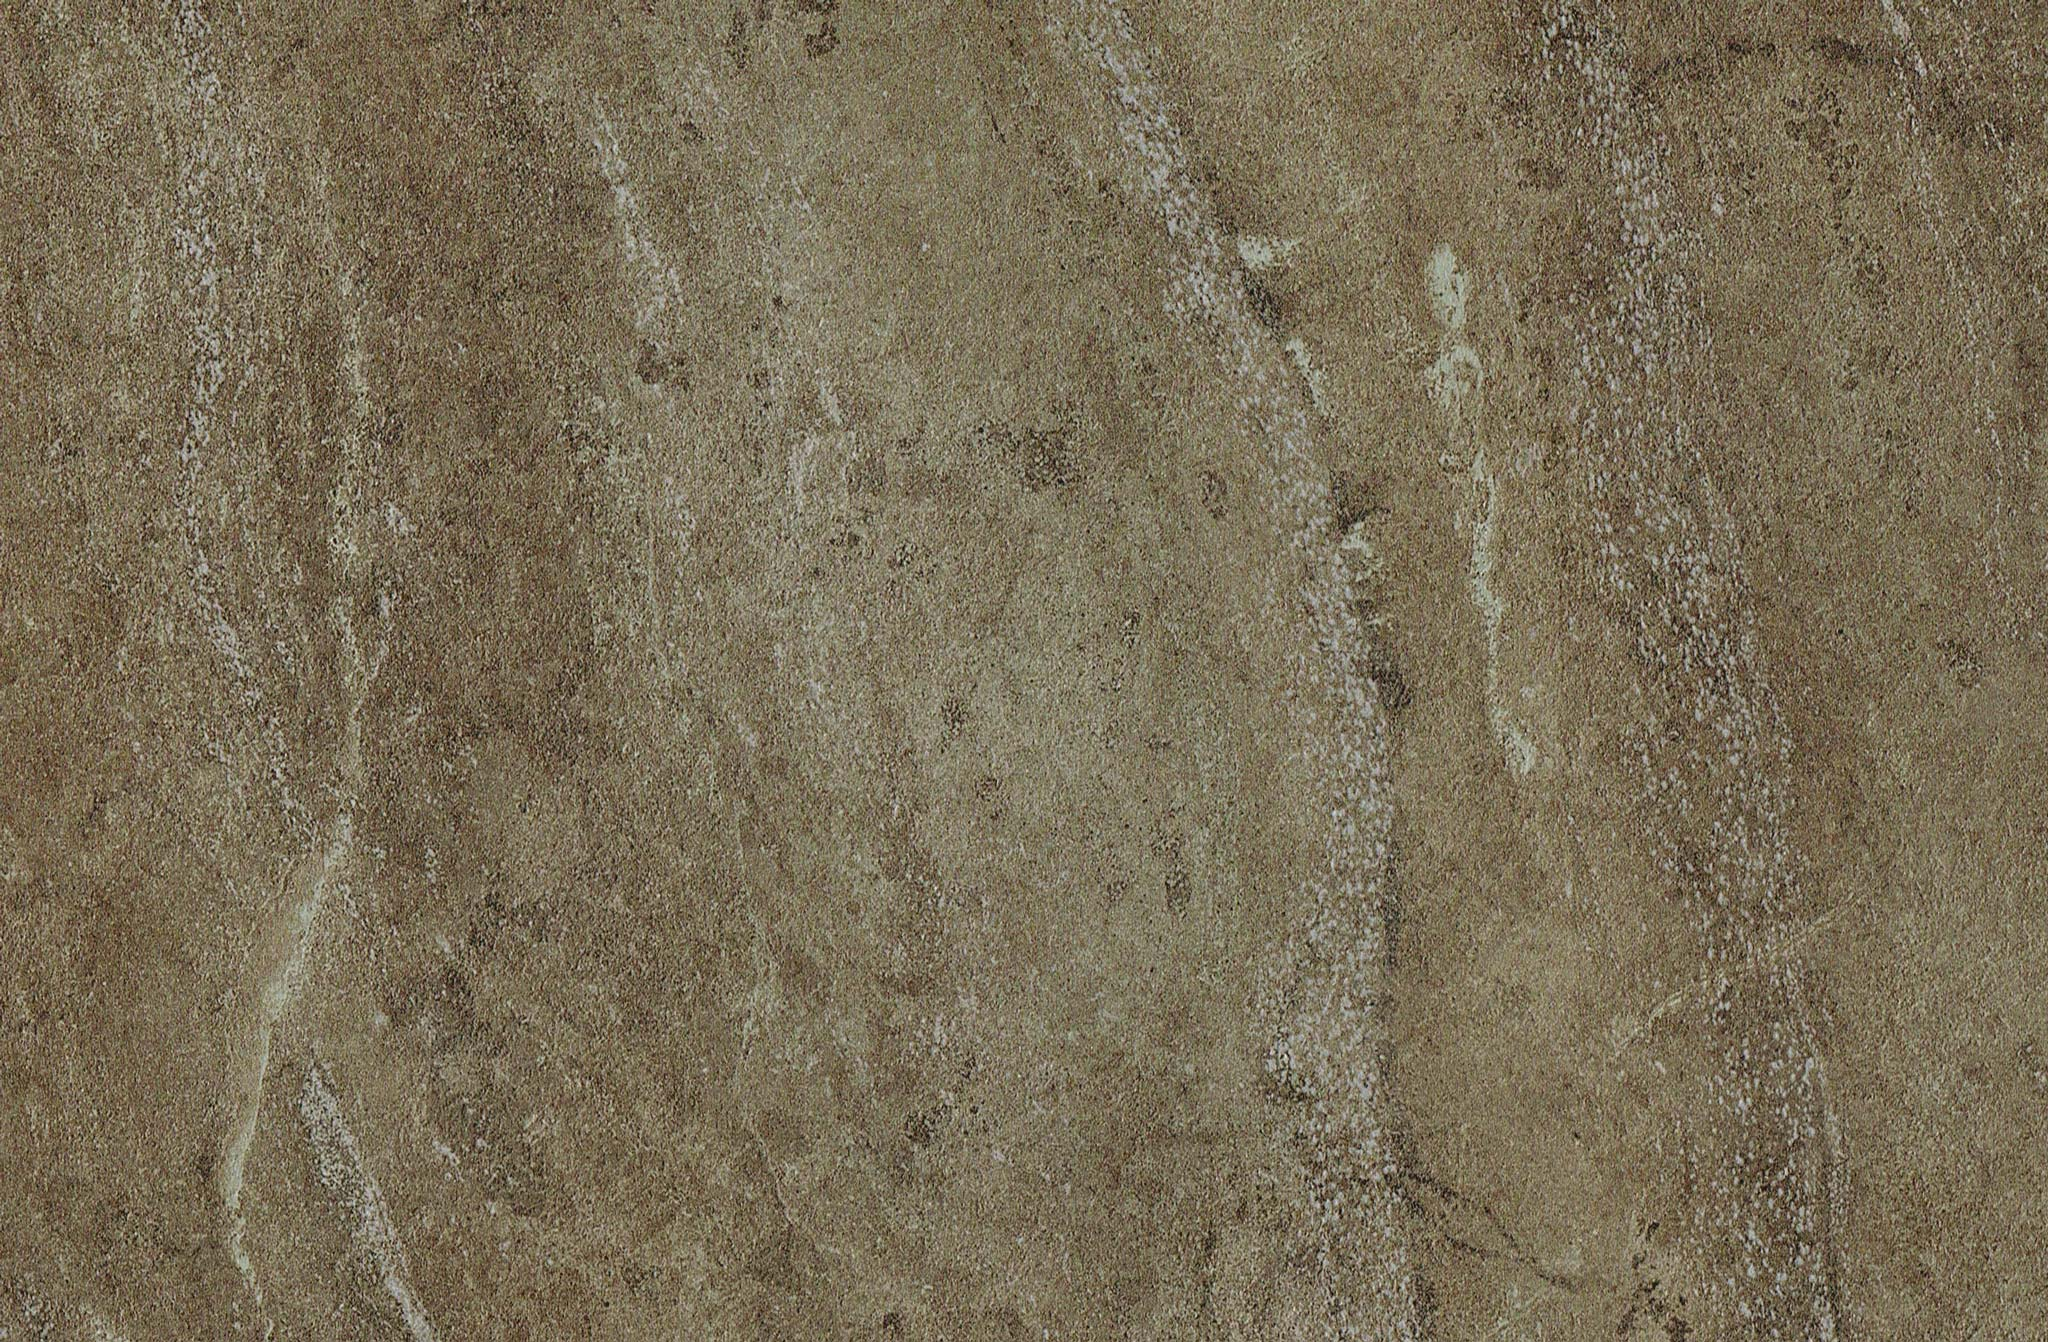 Aeon Bronzite worktop sample.